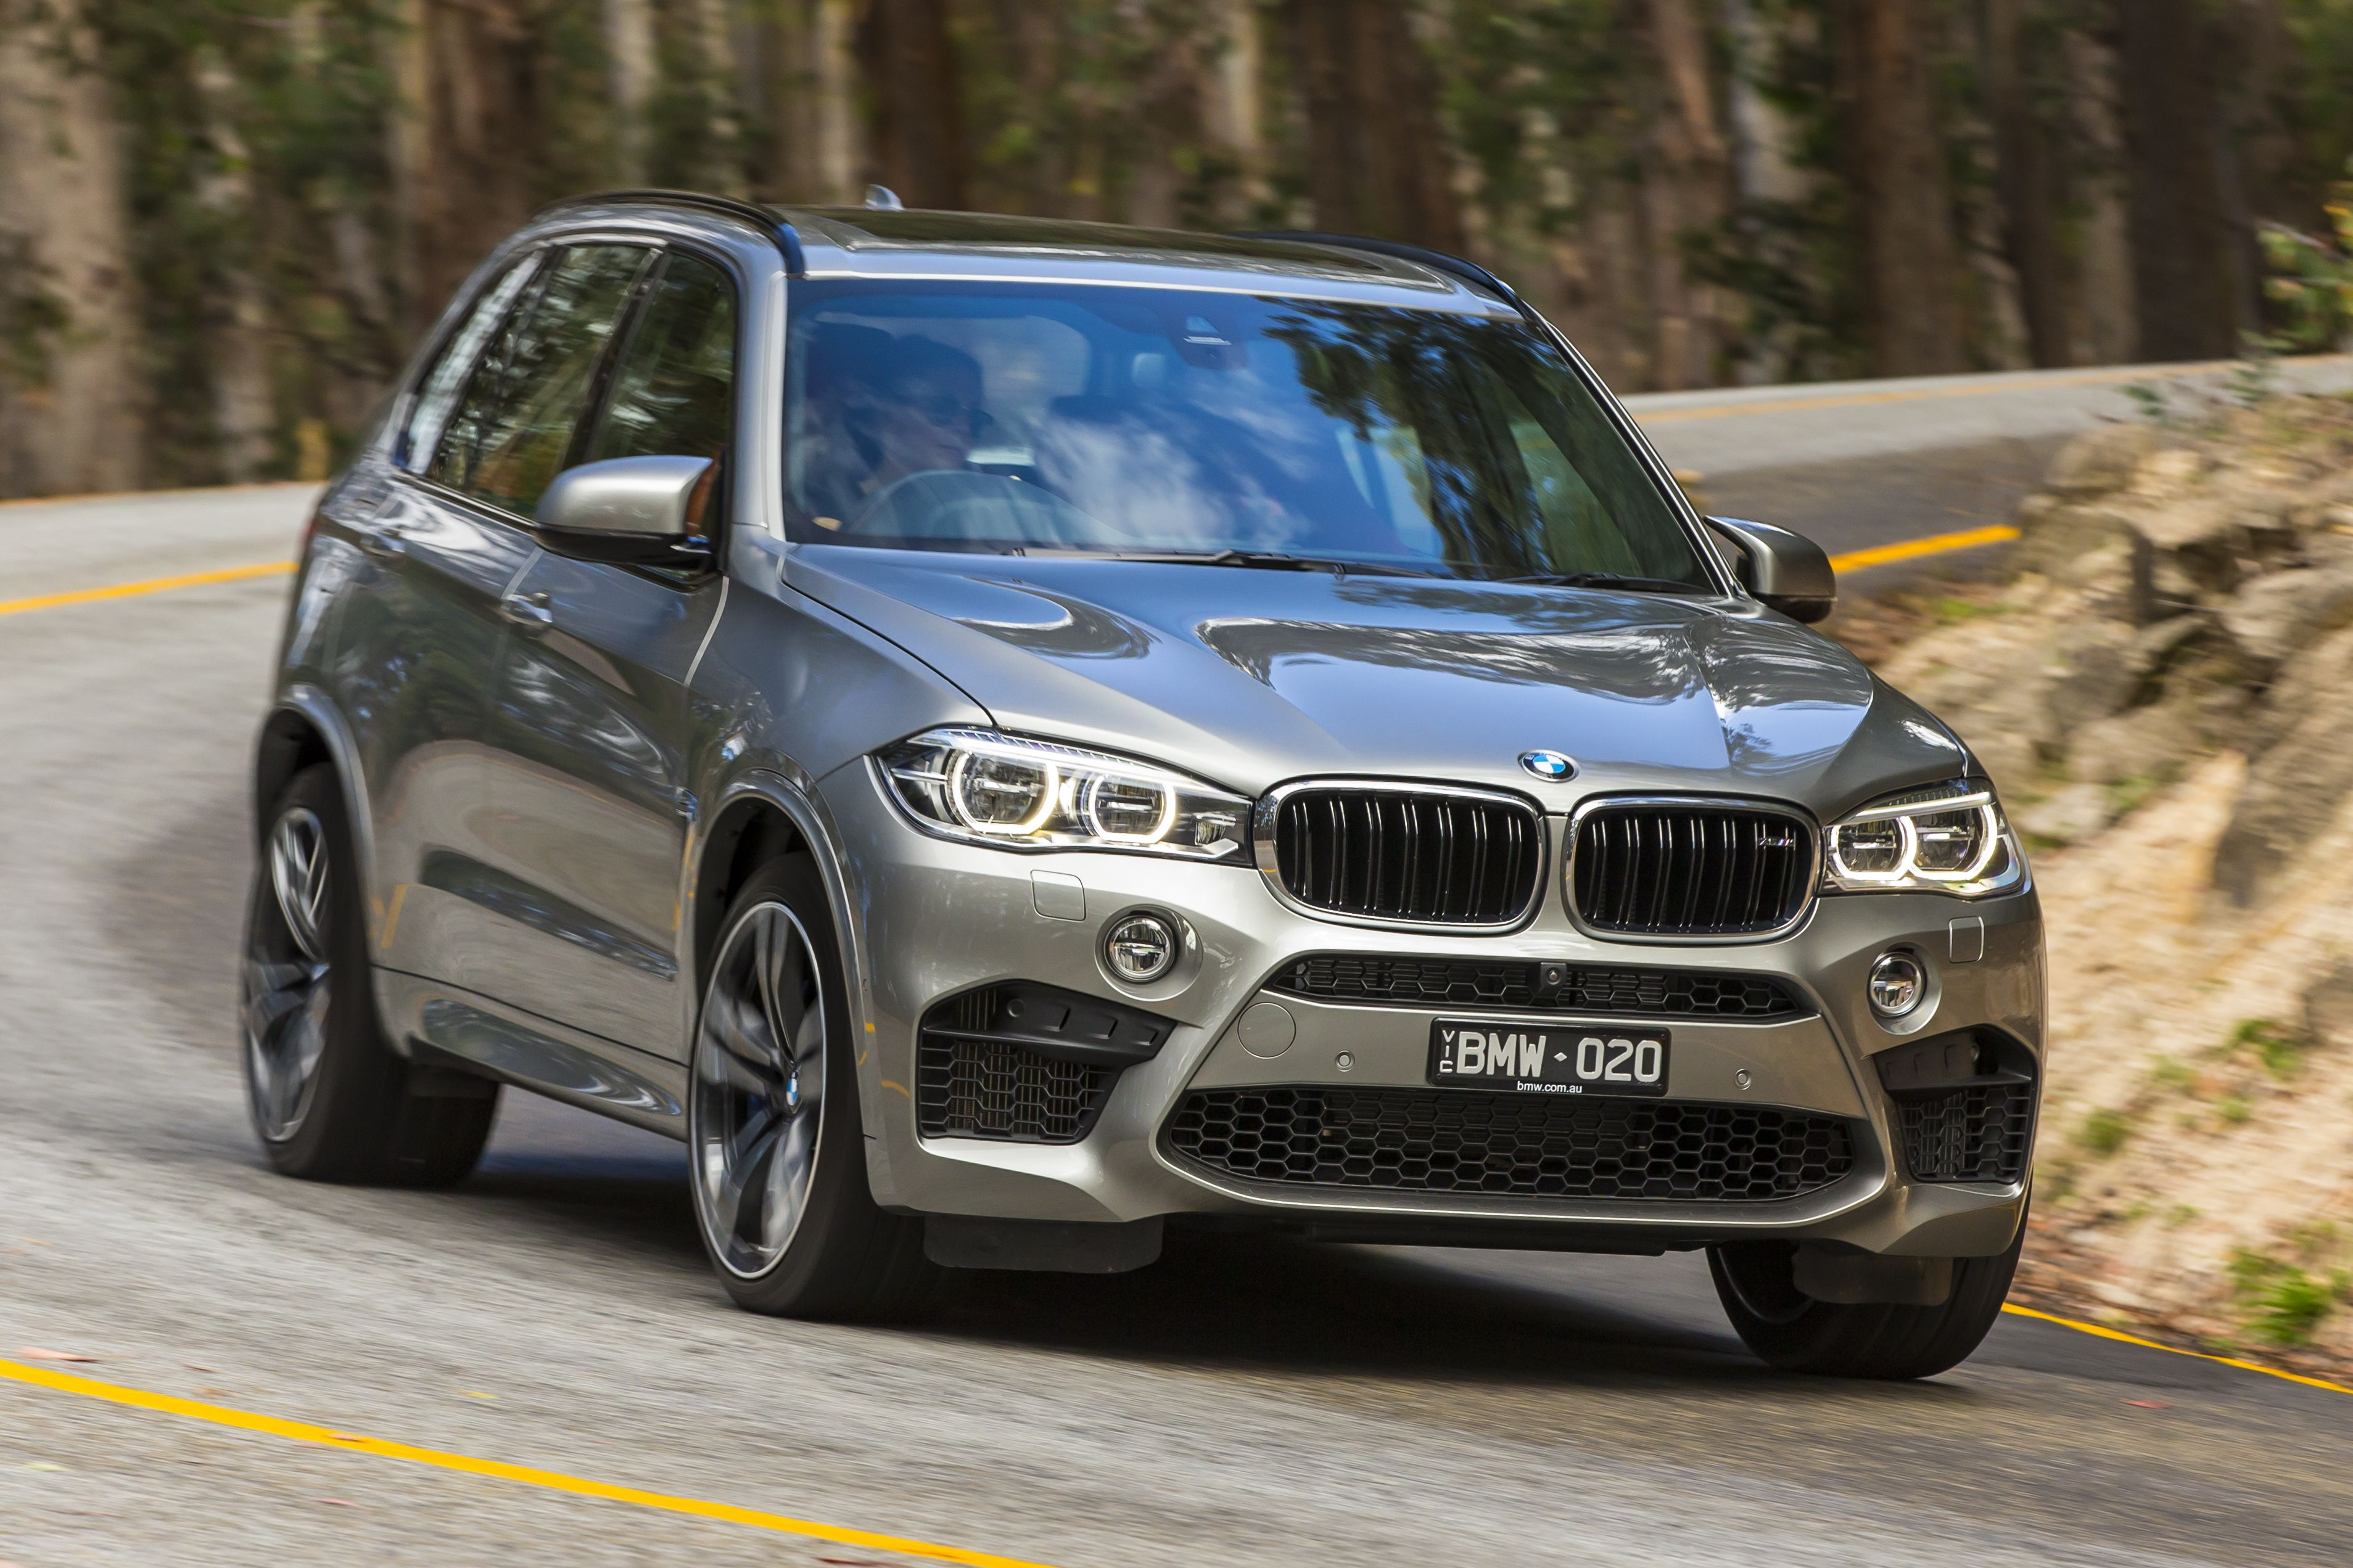 2015 Bmw X5 M And X6 M Review Photos Caradvice With Images Bmw X5 M Bmw